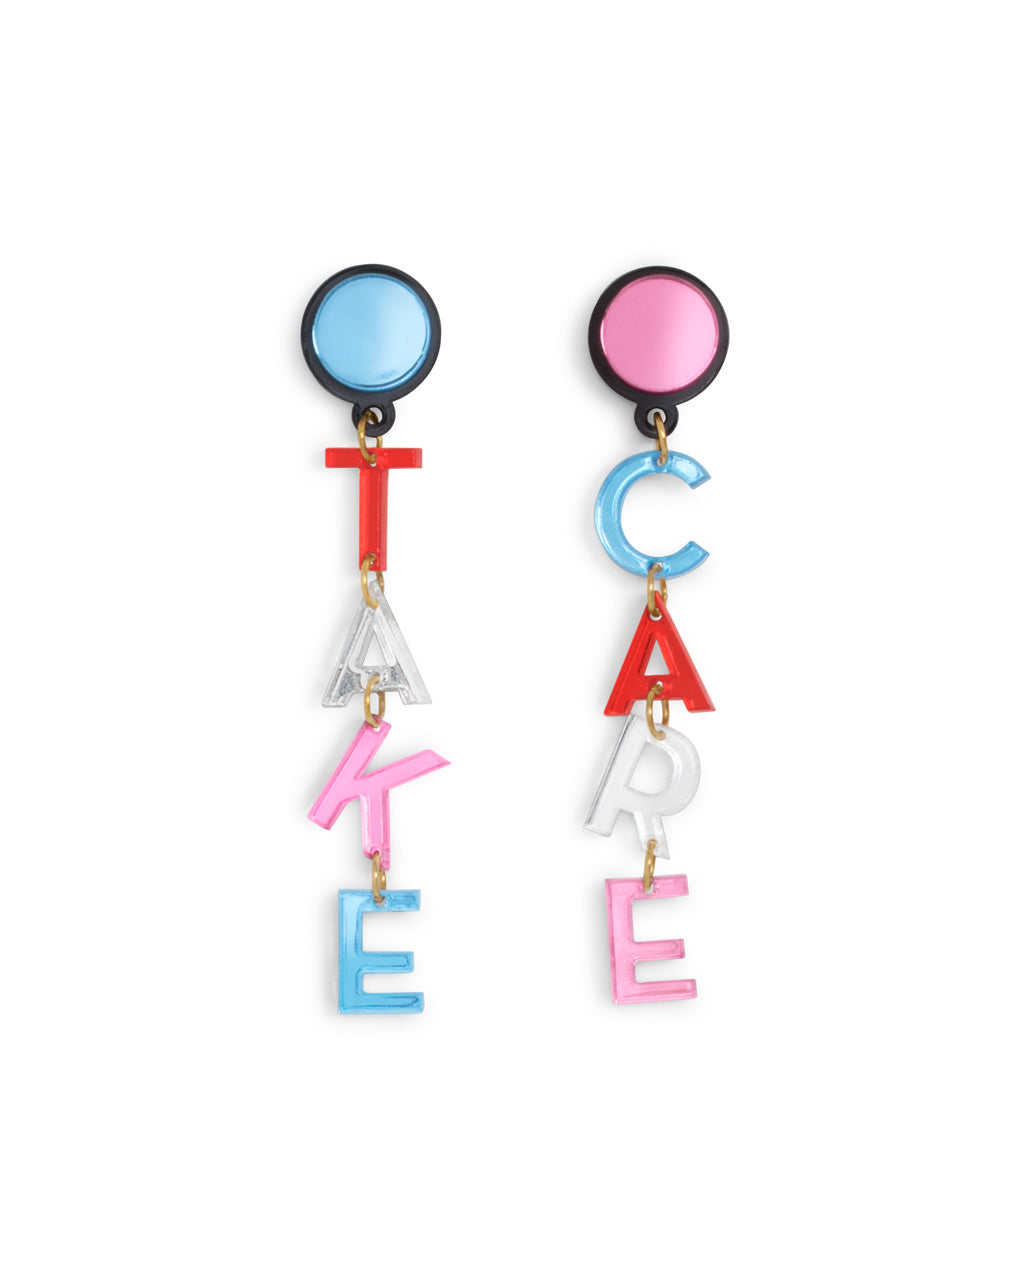 Laser cut acrylic earrings that say Take and Care